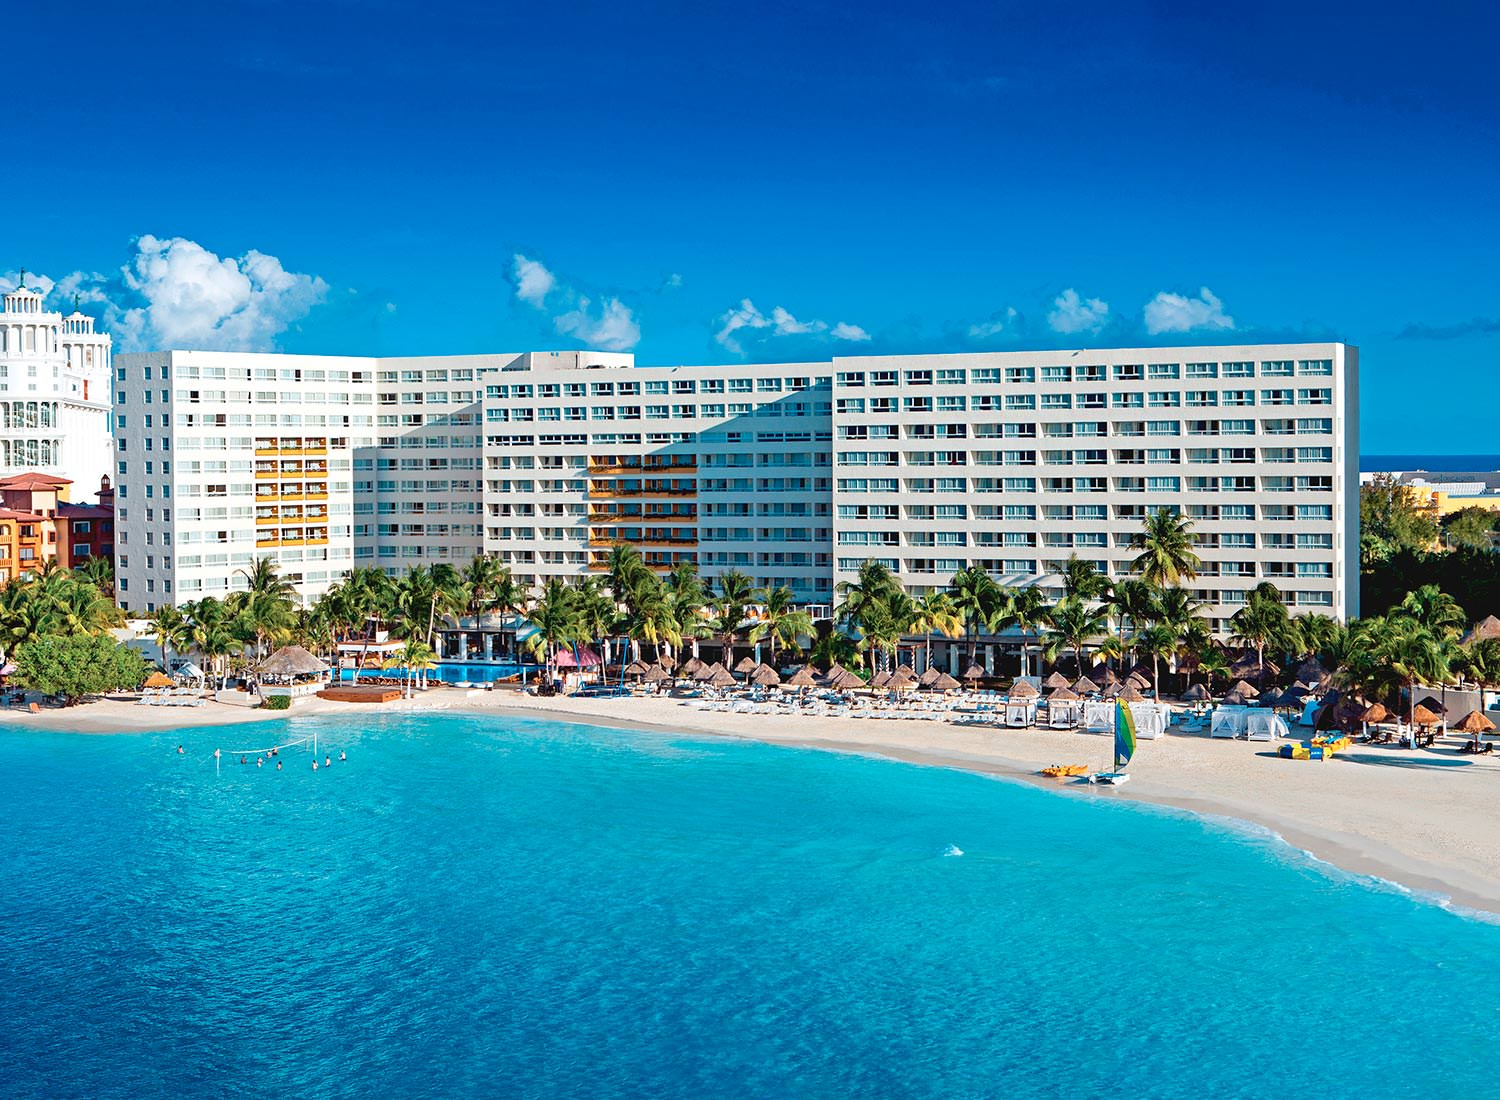 Dreams Sands Cancun Resort and Spa